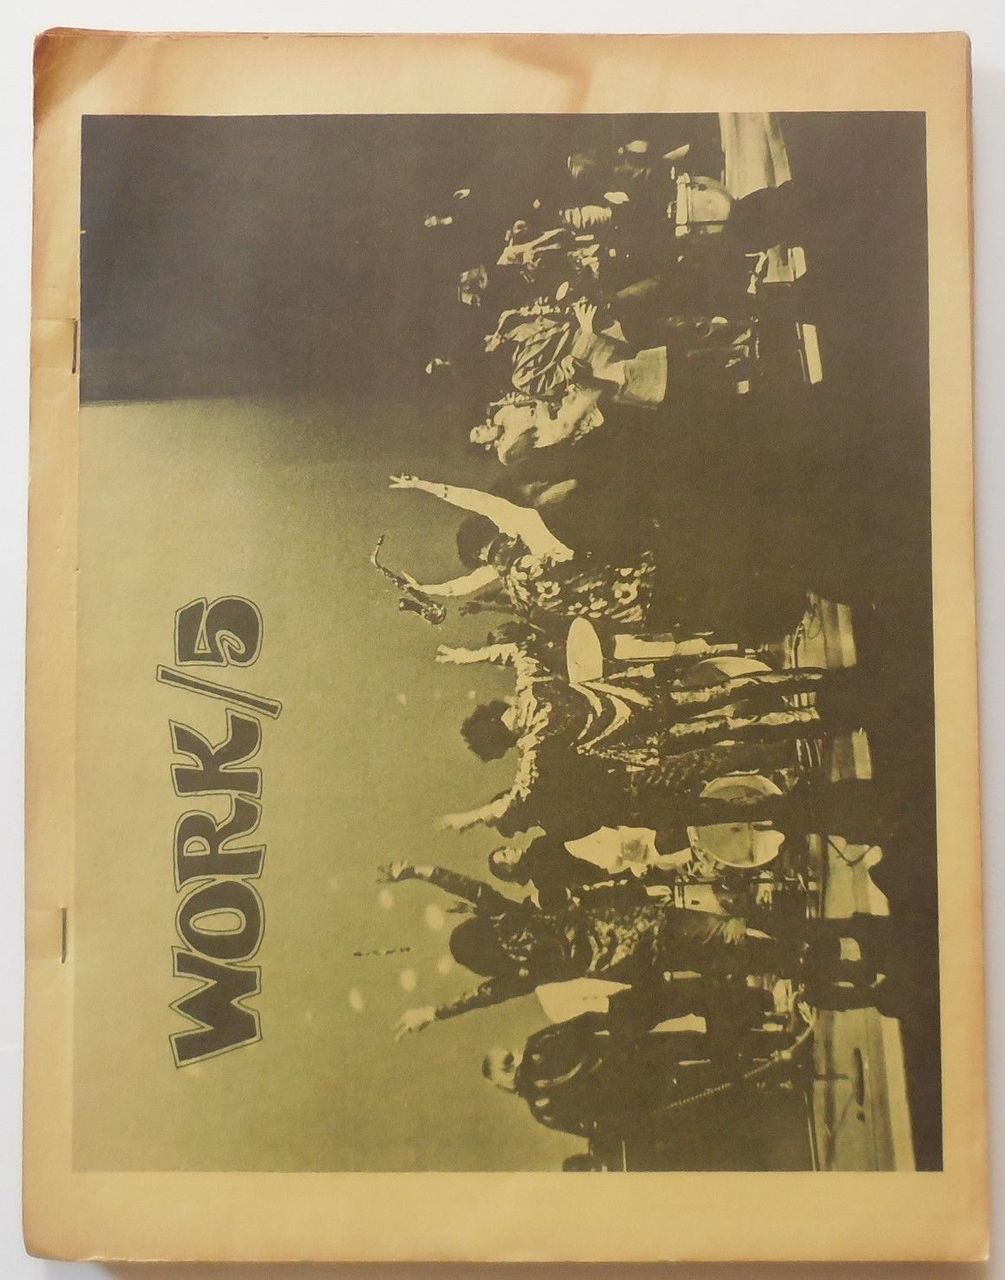 WORK/5, by Trans-Love Energies - 1968 [Ltd Ed]